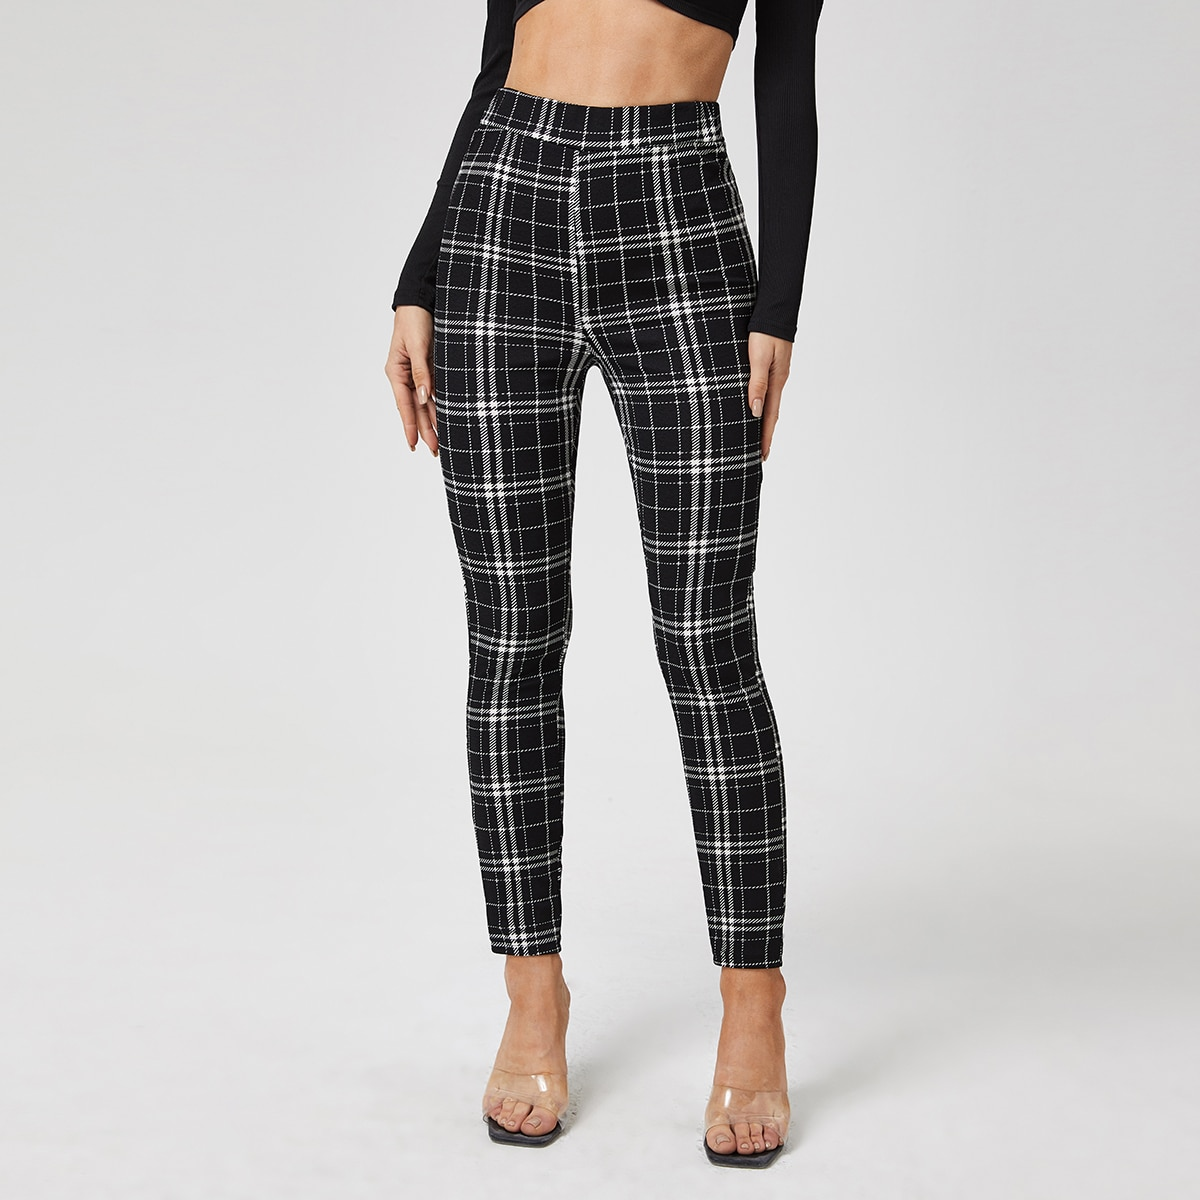 Plaid Print High Waisted Skinny Pants, SHEIN  - buy with discount